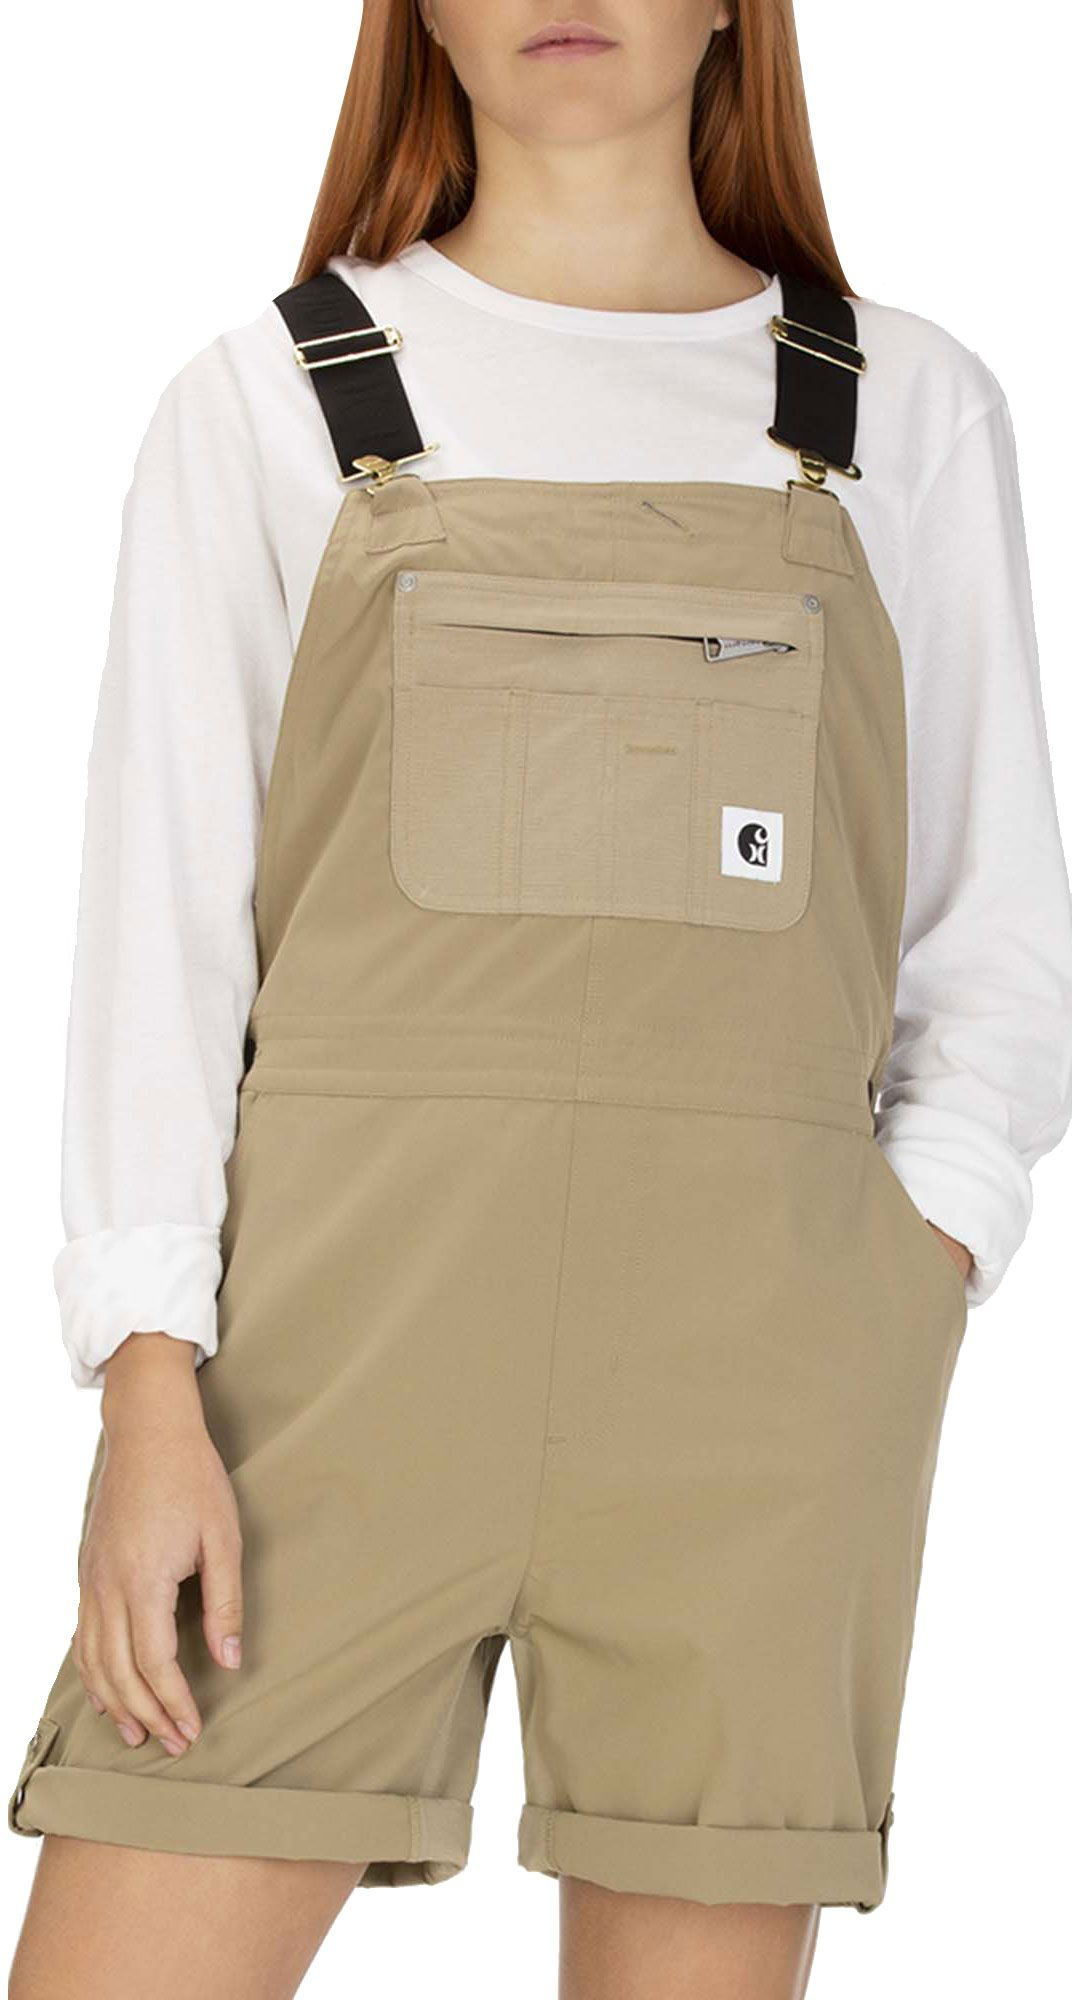 novel style hot-selling real super specials Hurley Women's Carhartt Short Overalls